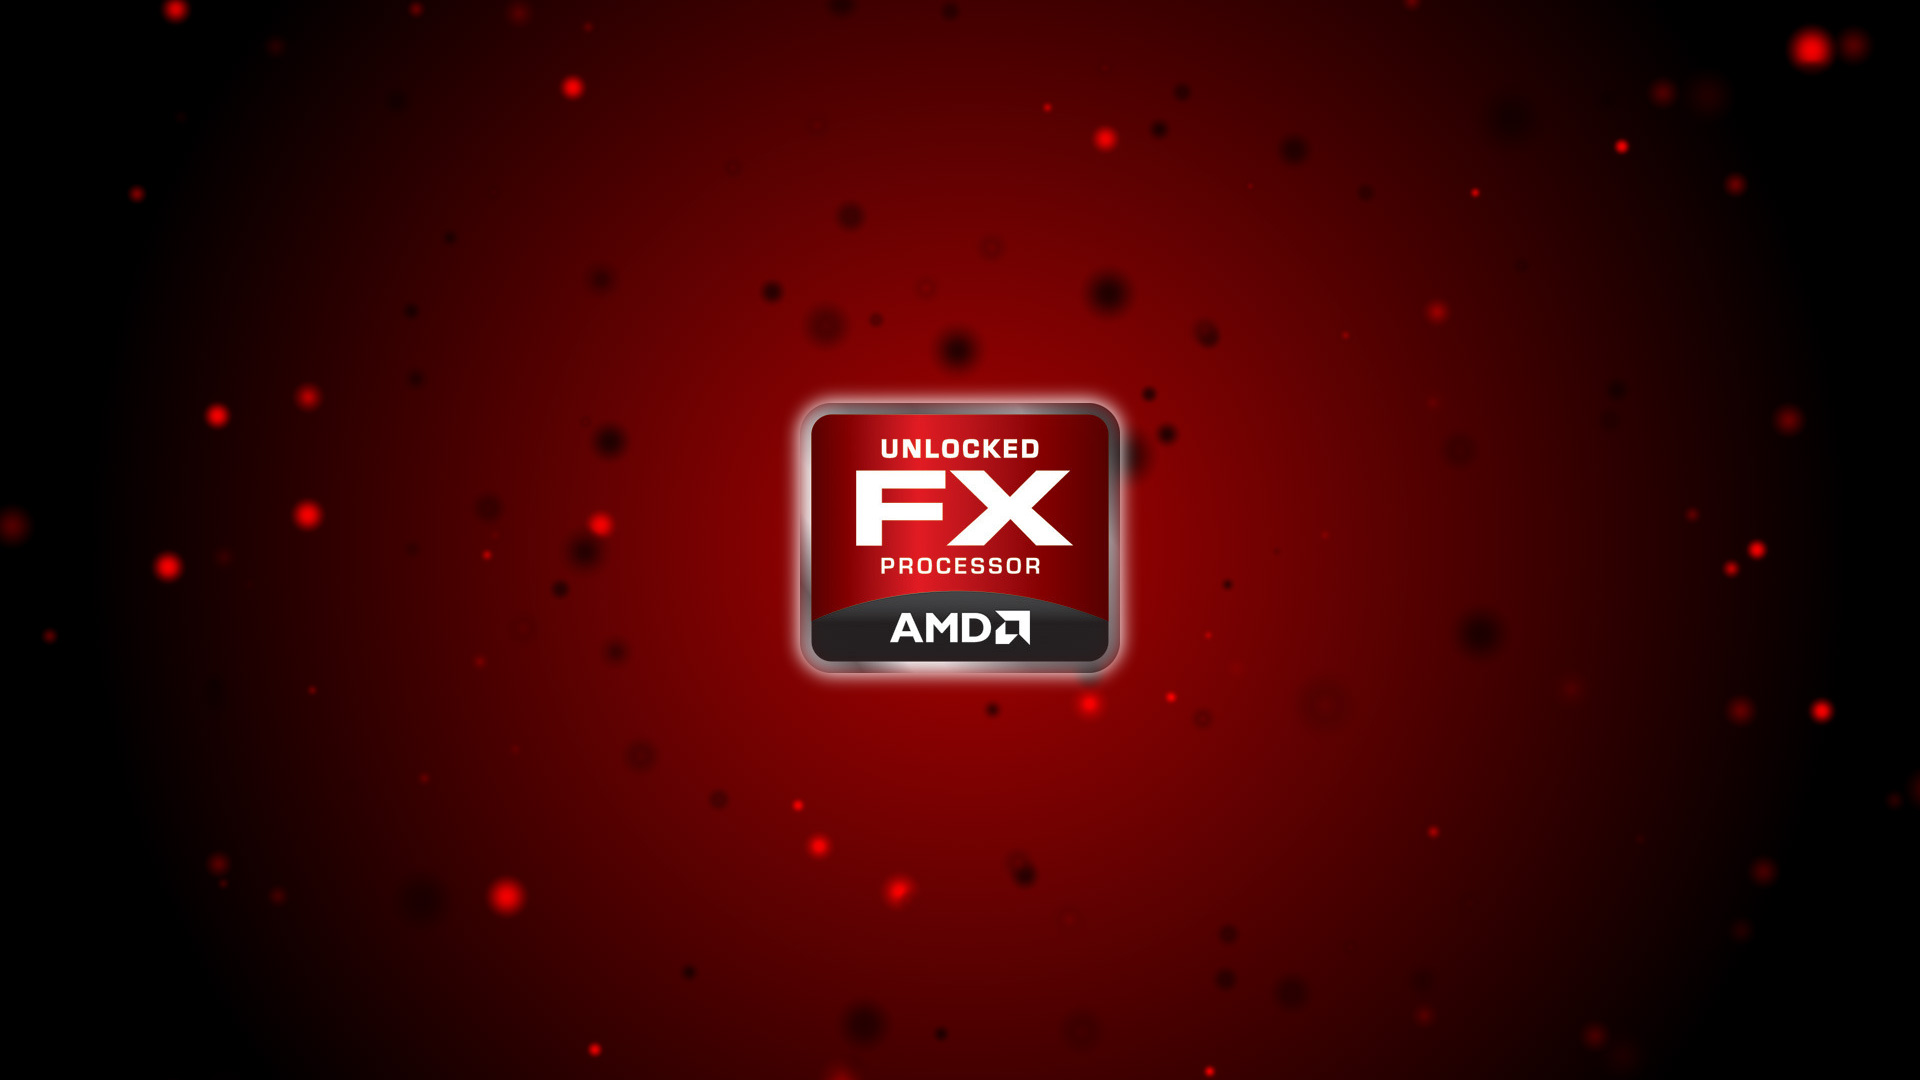 amd fx background by - photo #7